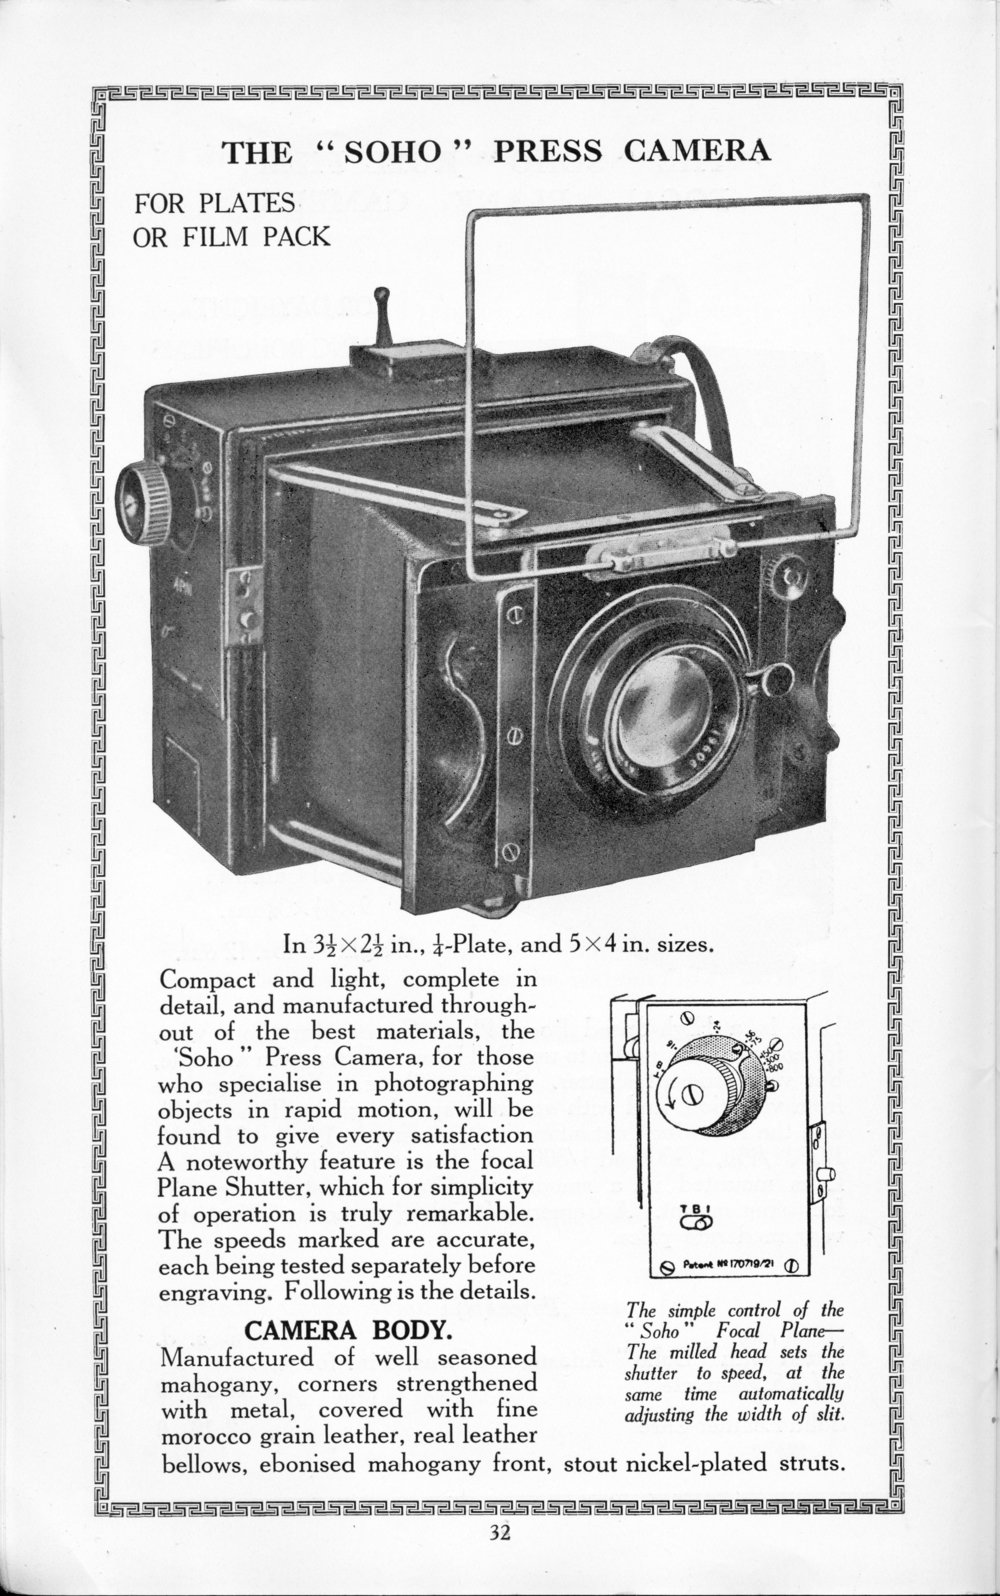 [Fig.6] The Soho Press Camera was also launched around 1932.